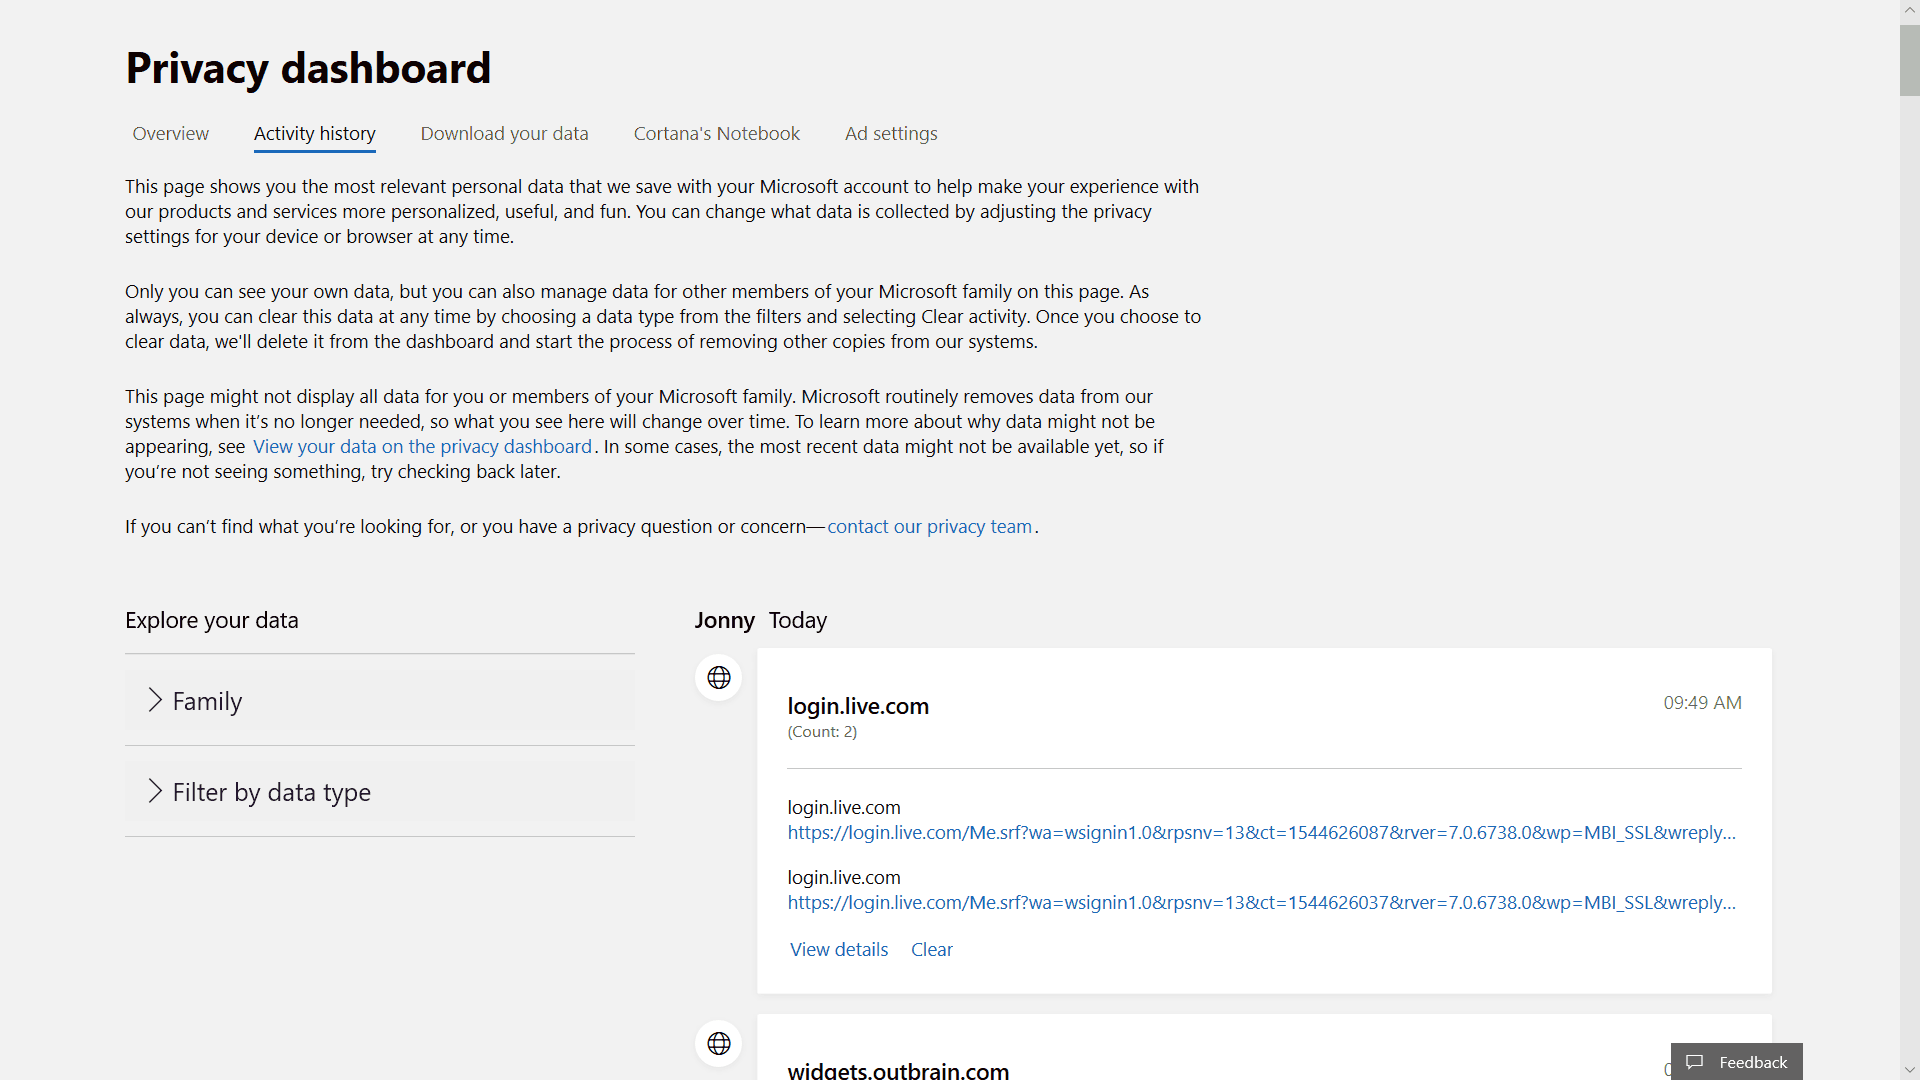 Windows 10 reportedly continues logging activity history in the cloud even when disabled (updated) - onmsft. Com - december 12, 2018